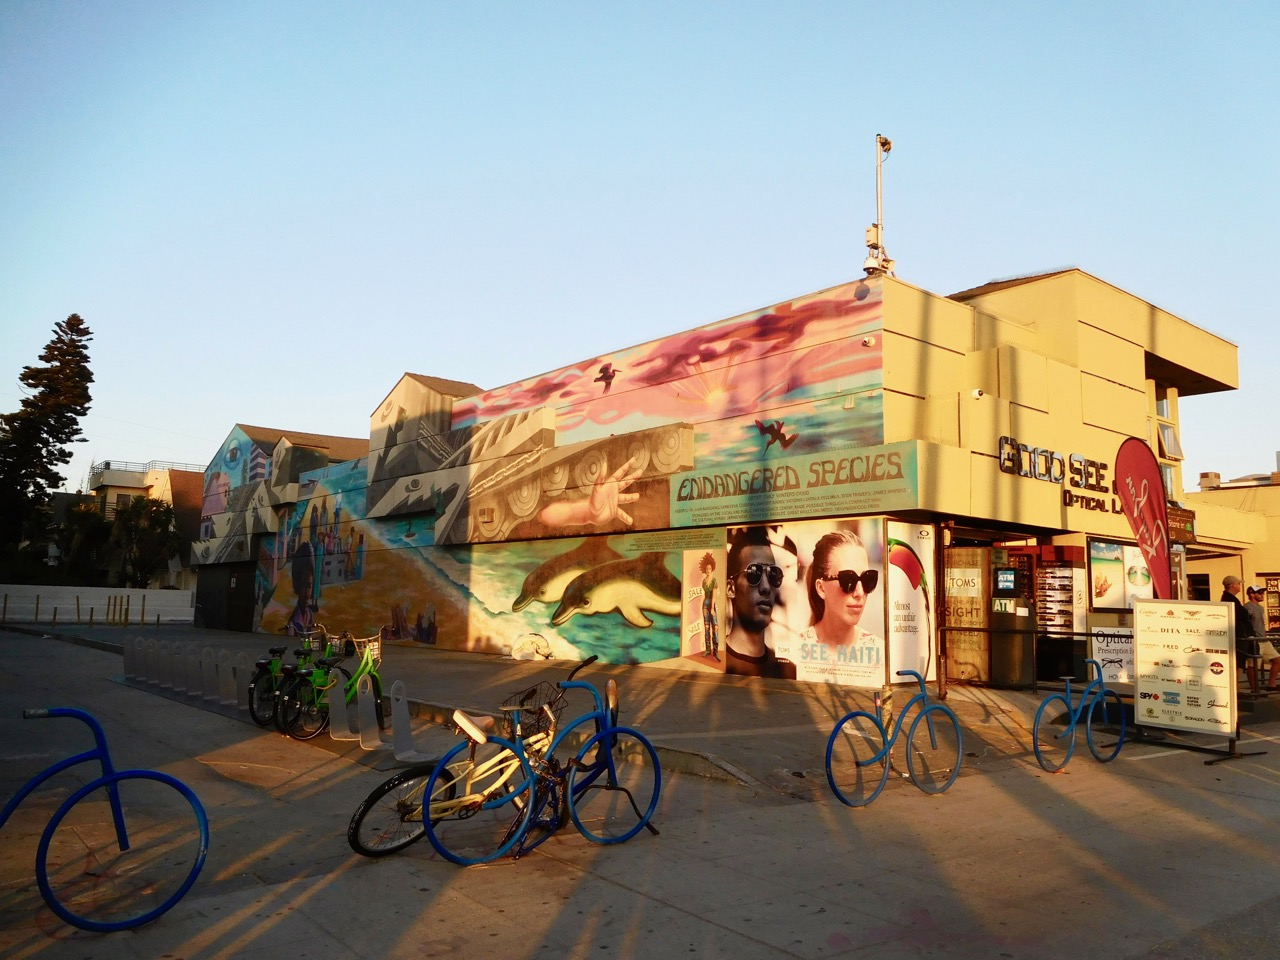 3 Days in L.A. - Venice Beach (4)